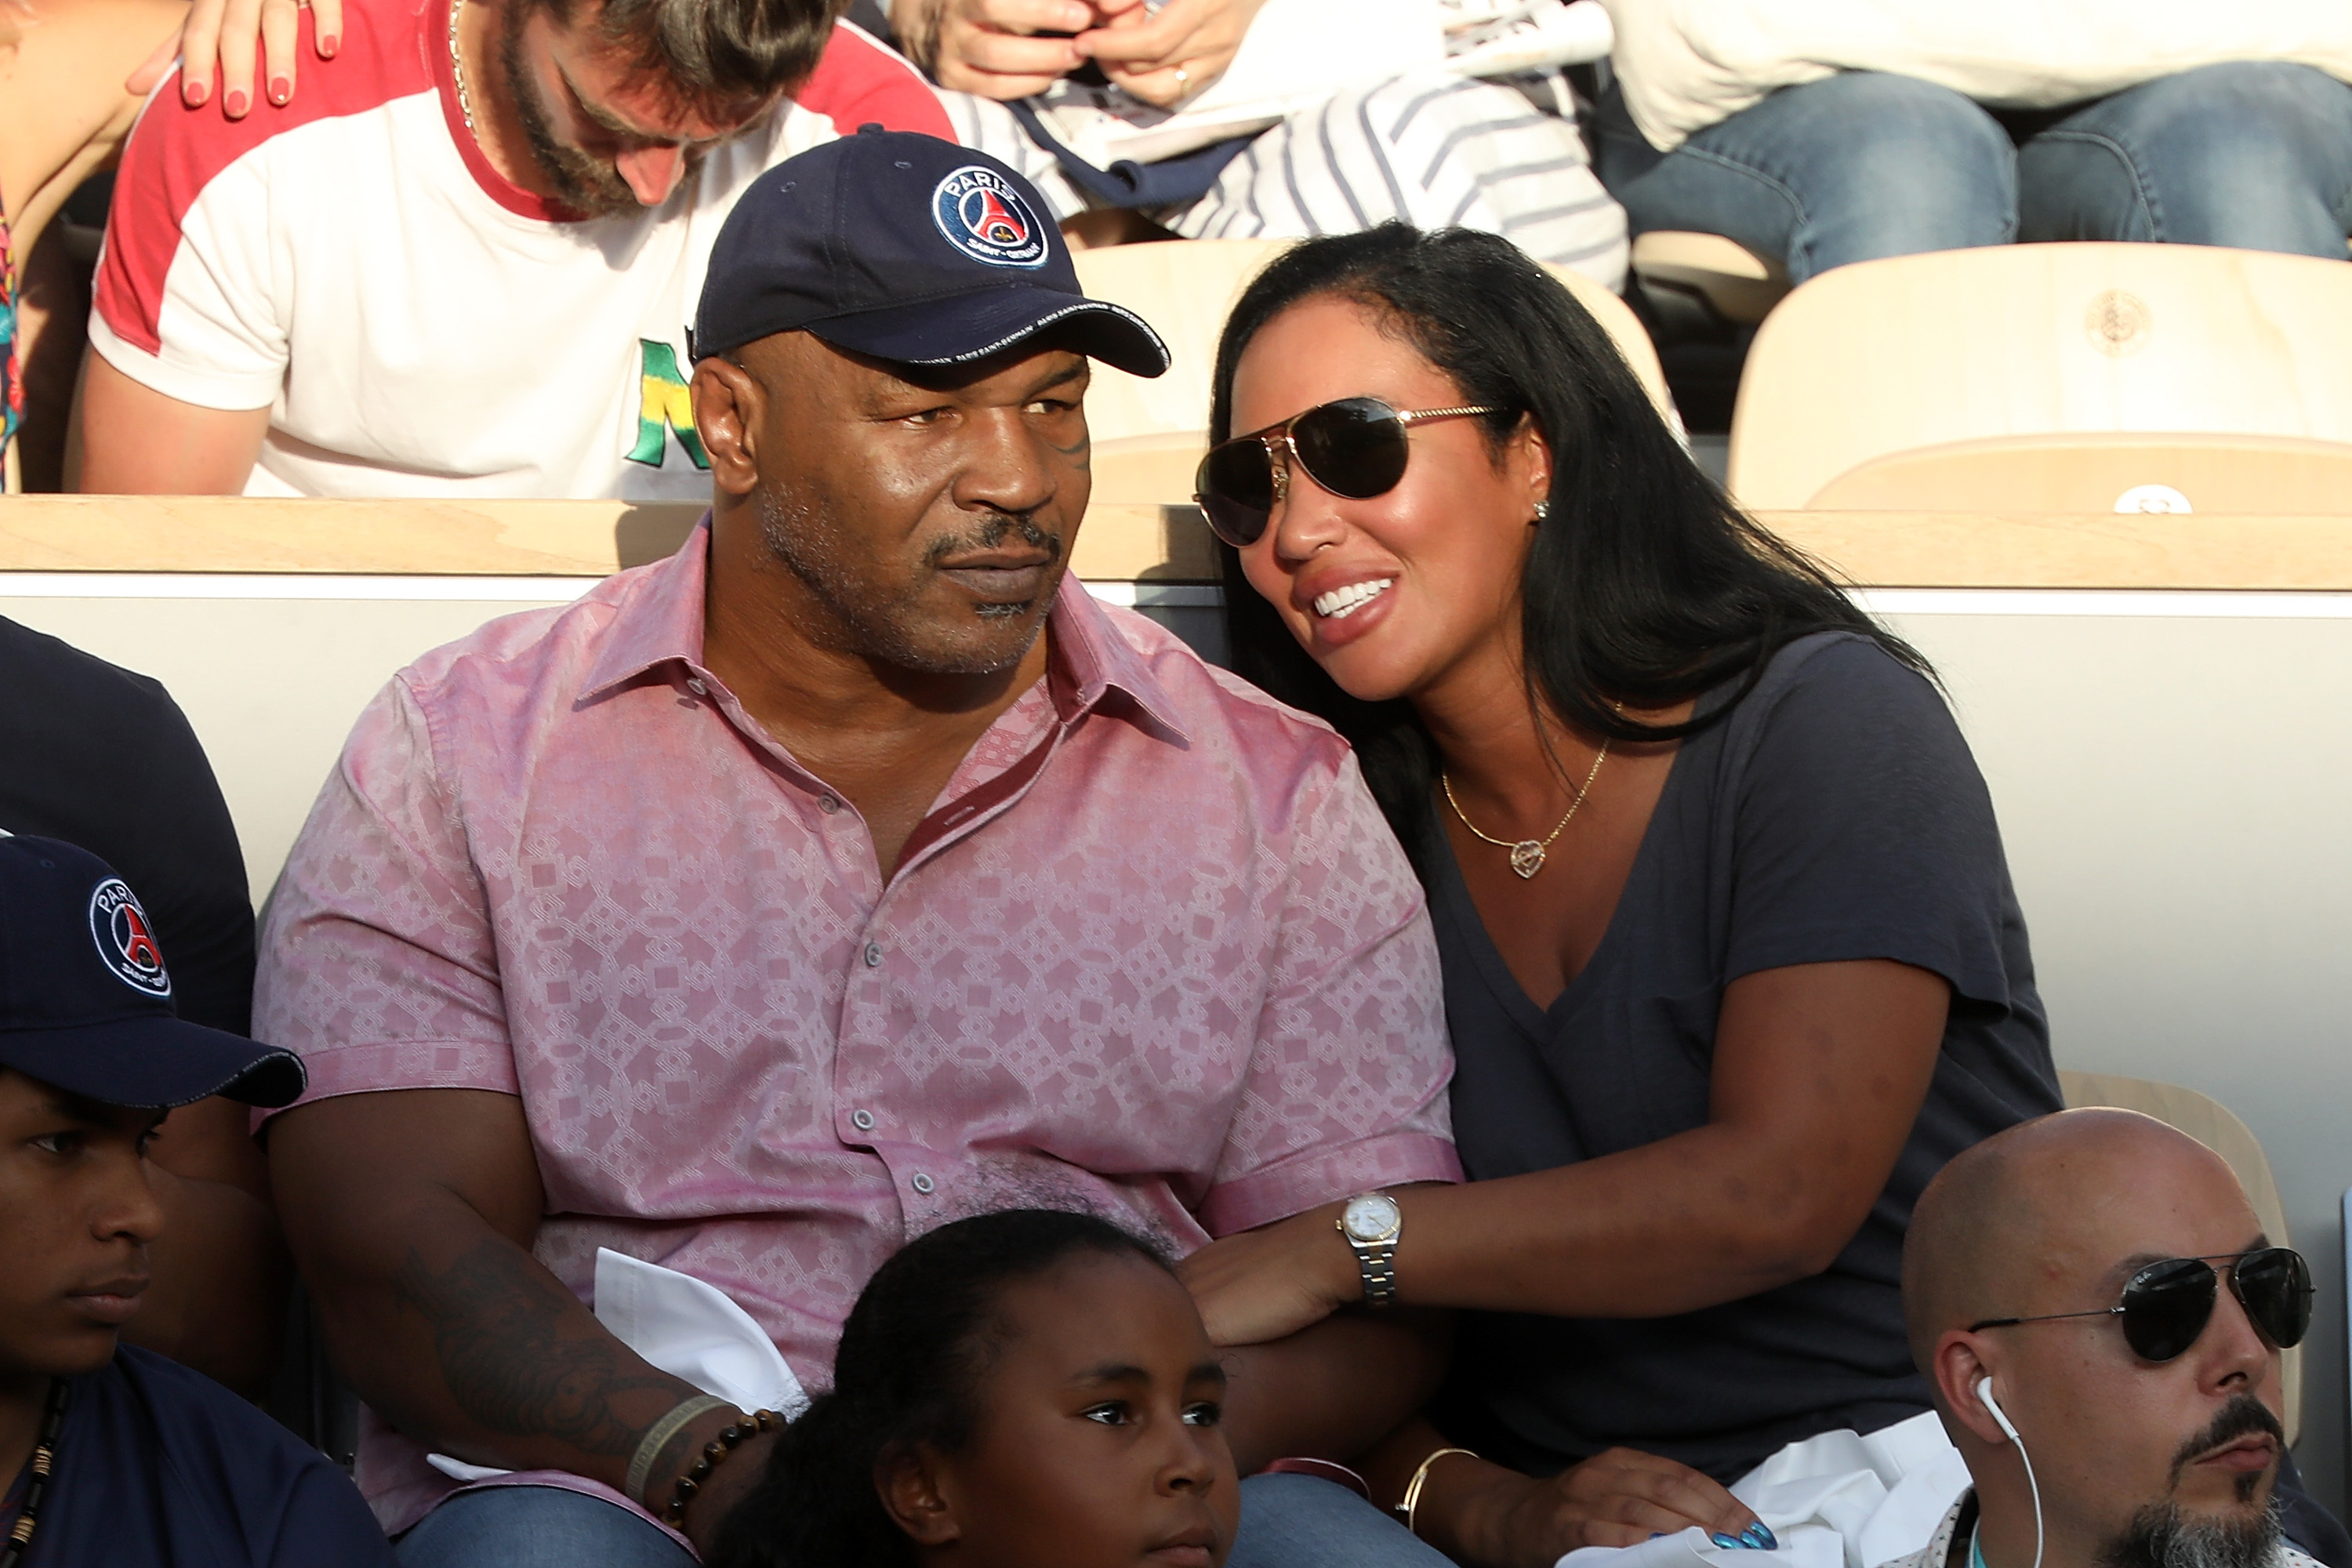 Imagine combining Mike Tyson and Serena Williams?